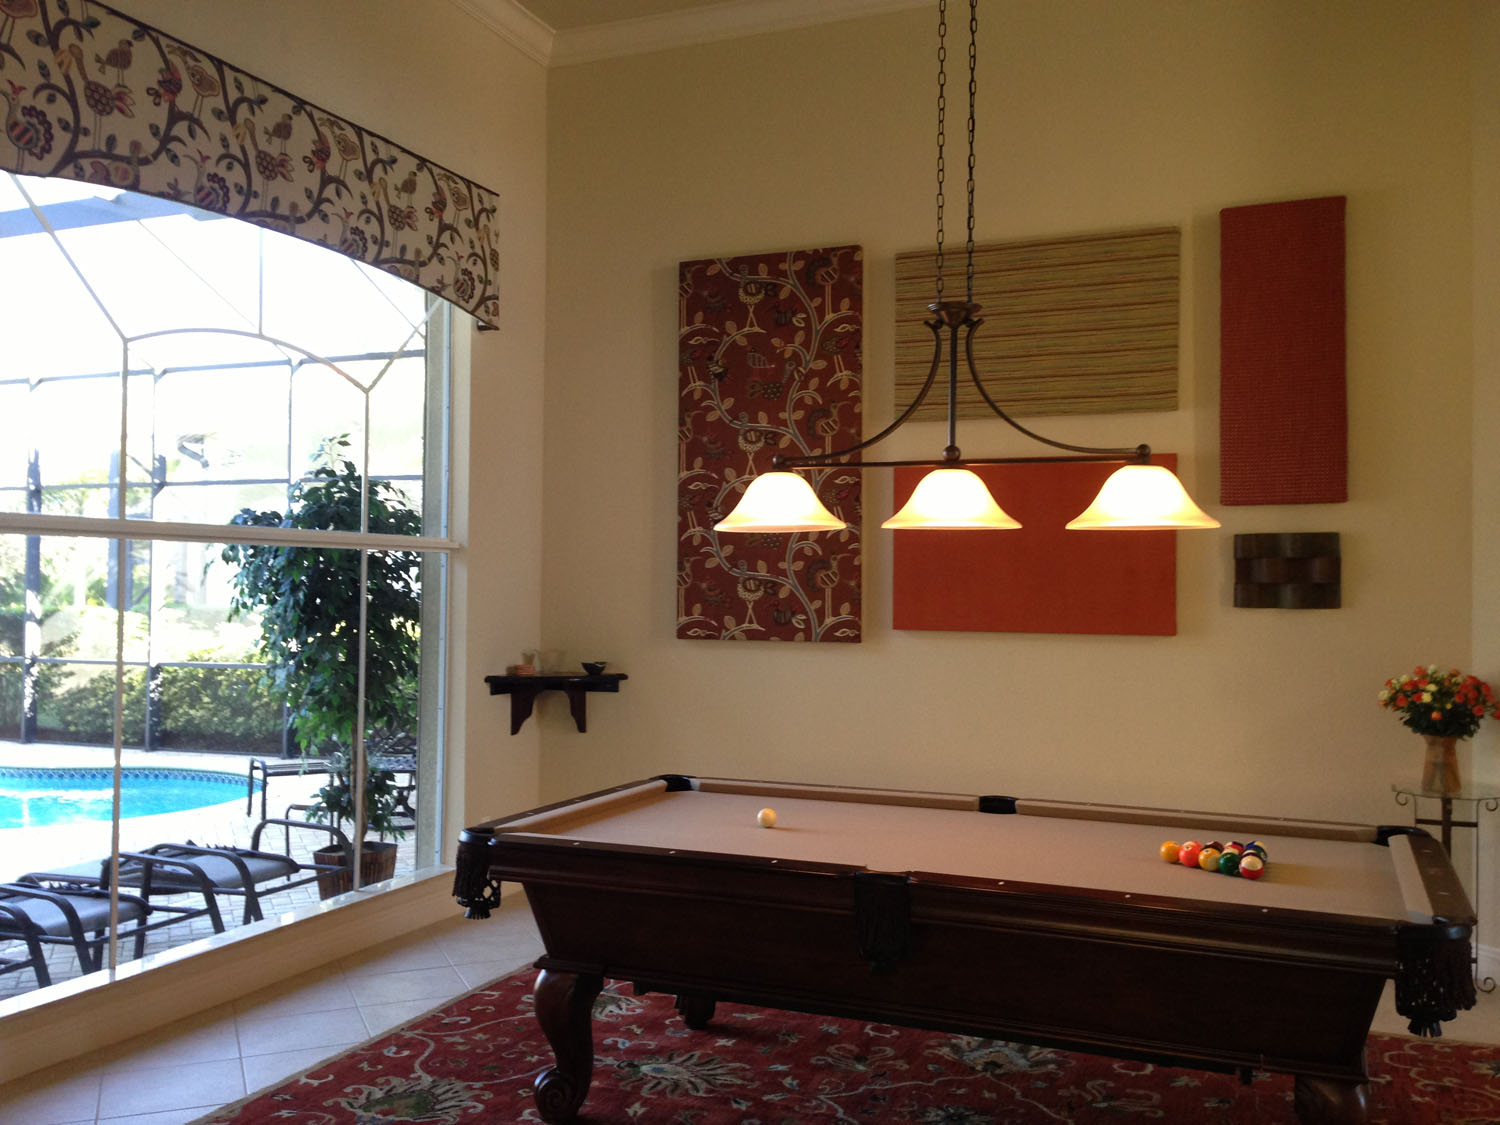 changing-spaces-03-after-home-makeover-project-pool-table-1500px.jpg